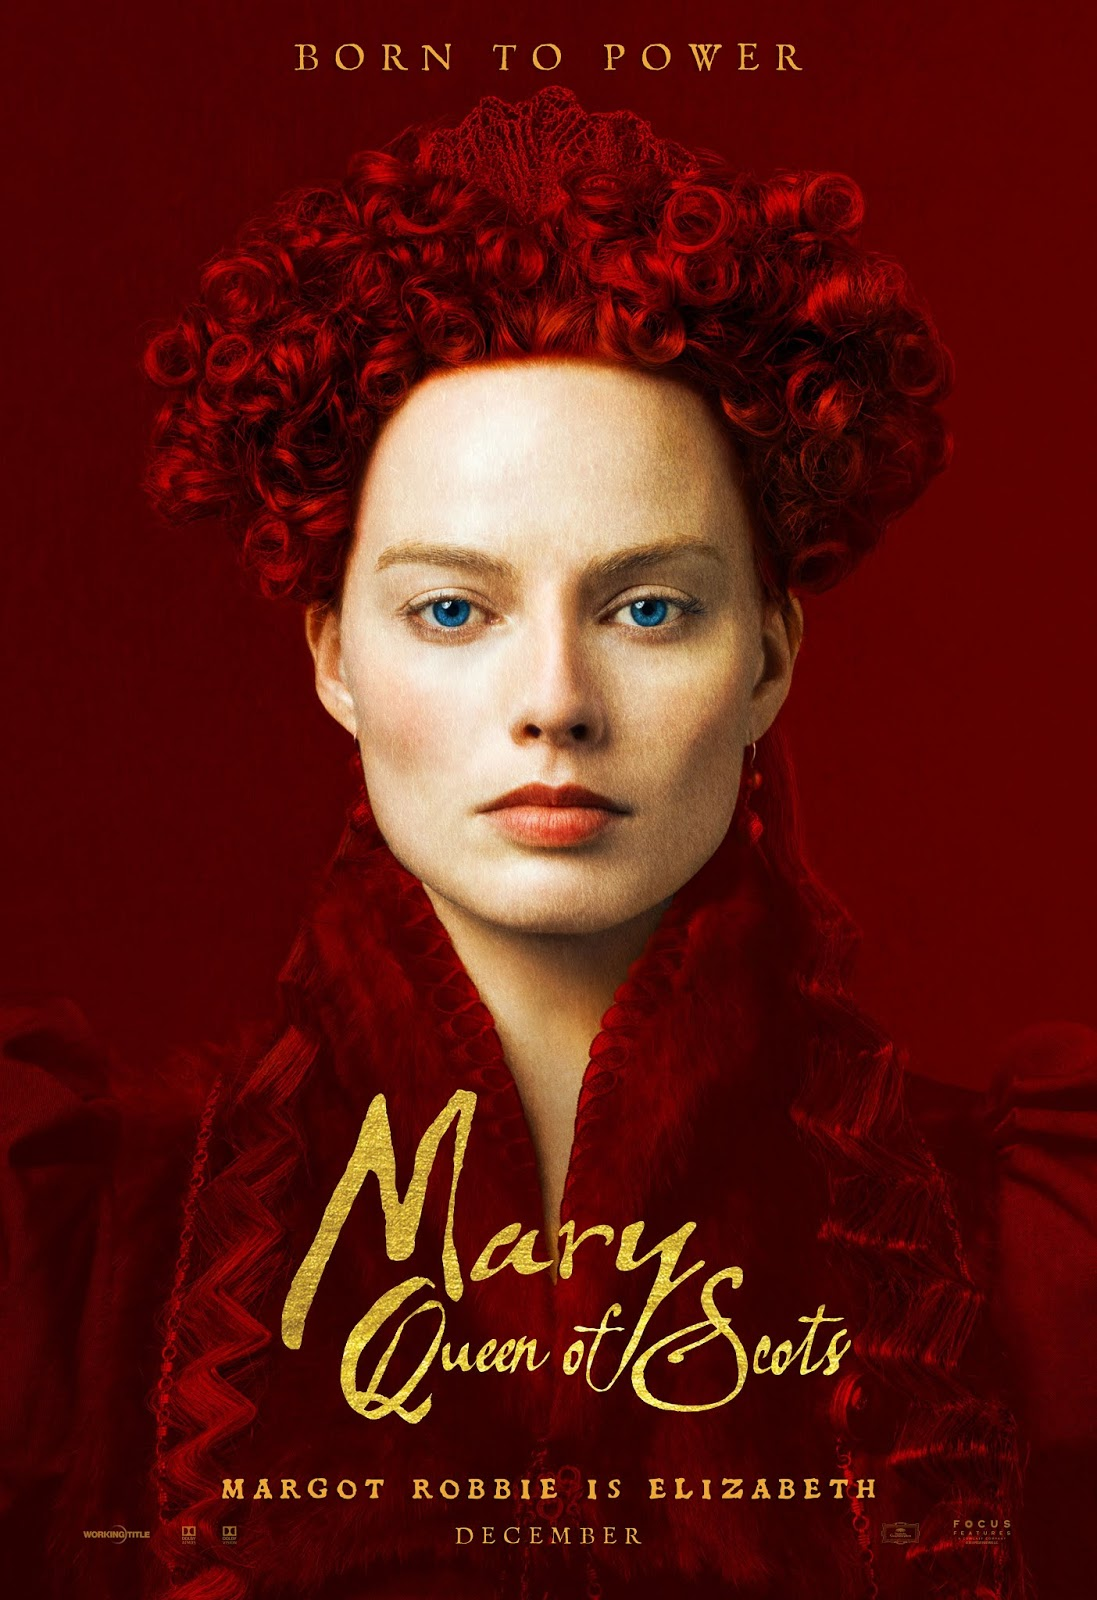 Mary Queen of Scots character poster